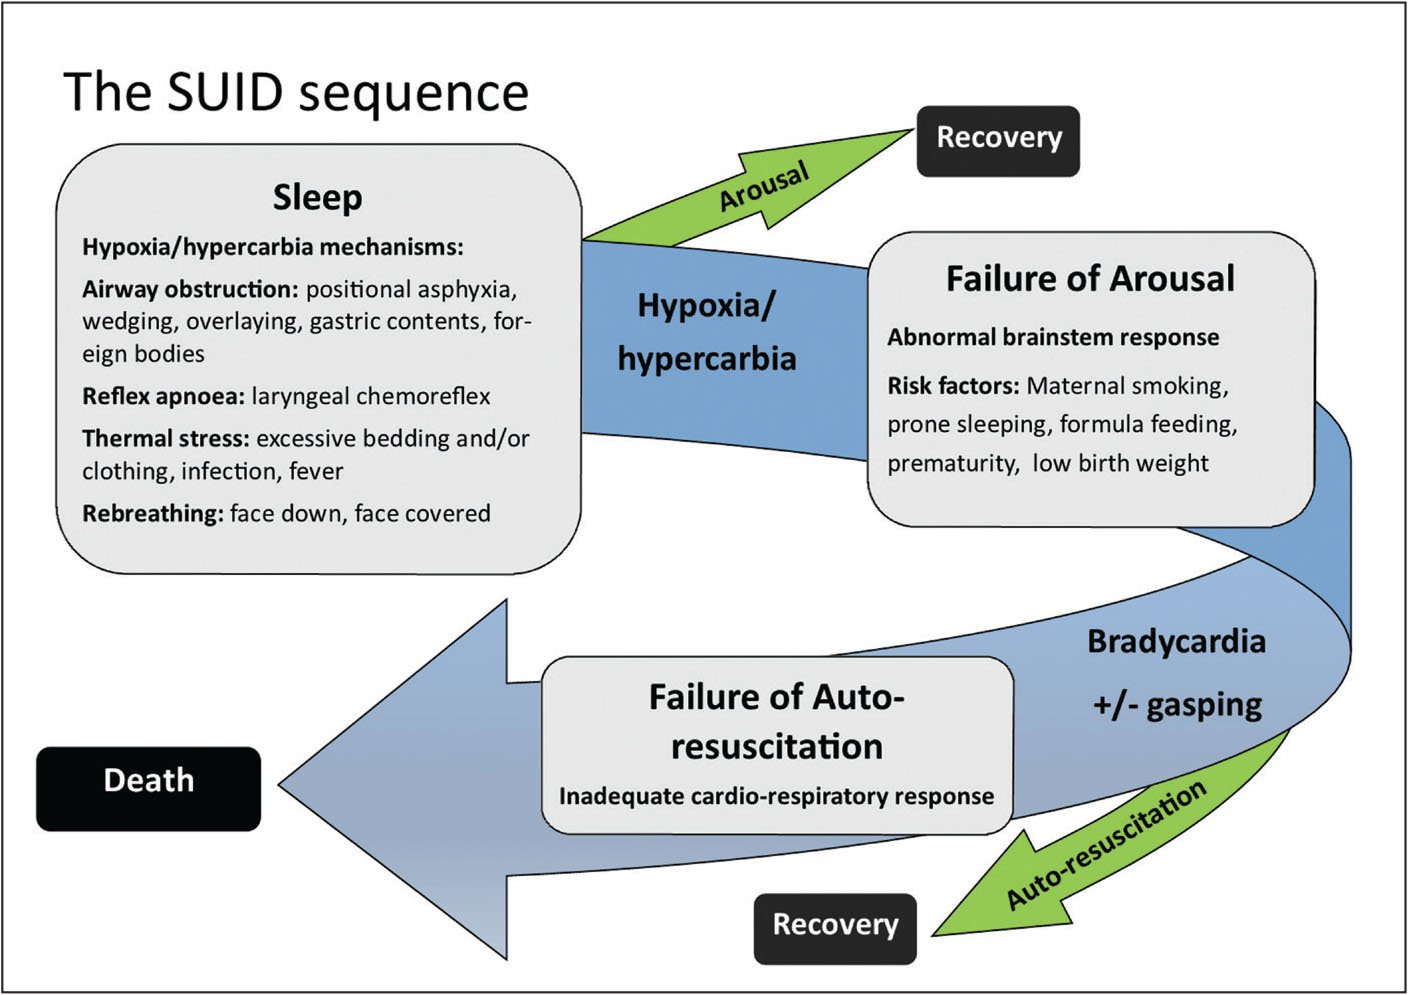 The major hypothesis for the sequence of events causing death in sudden unexpected infant death (SUID).